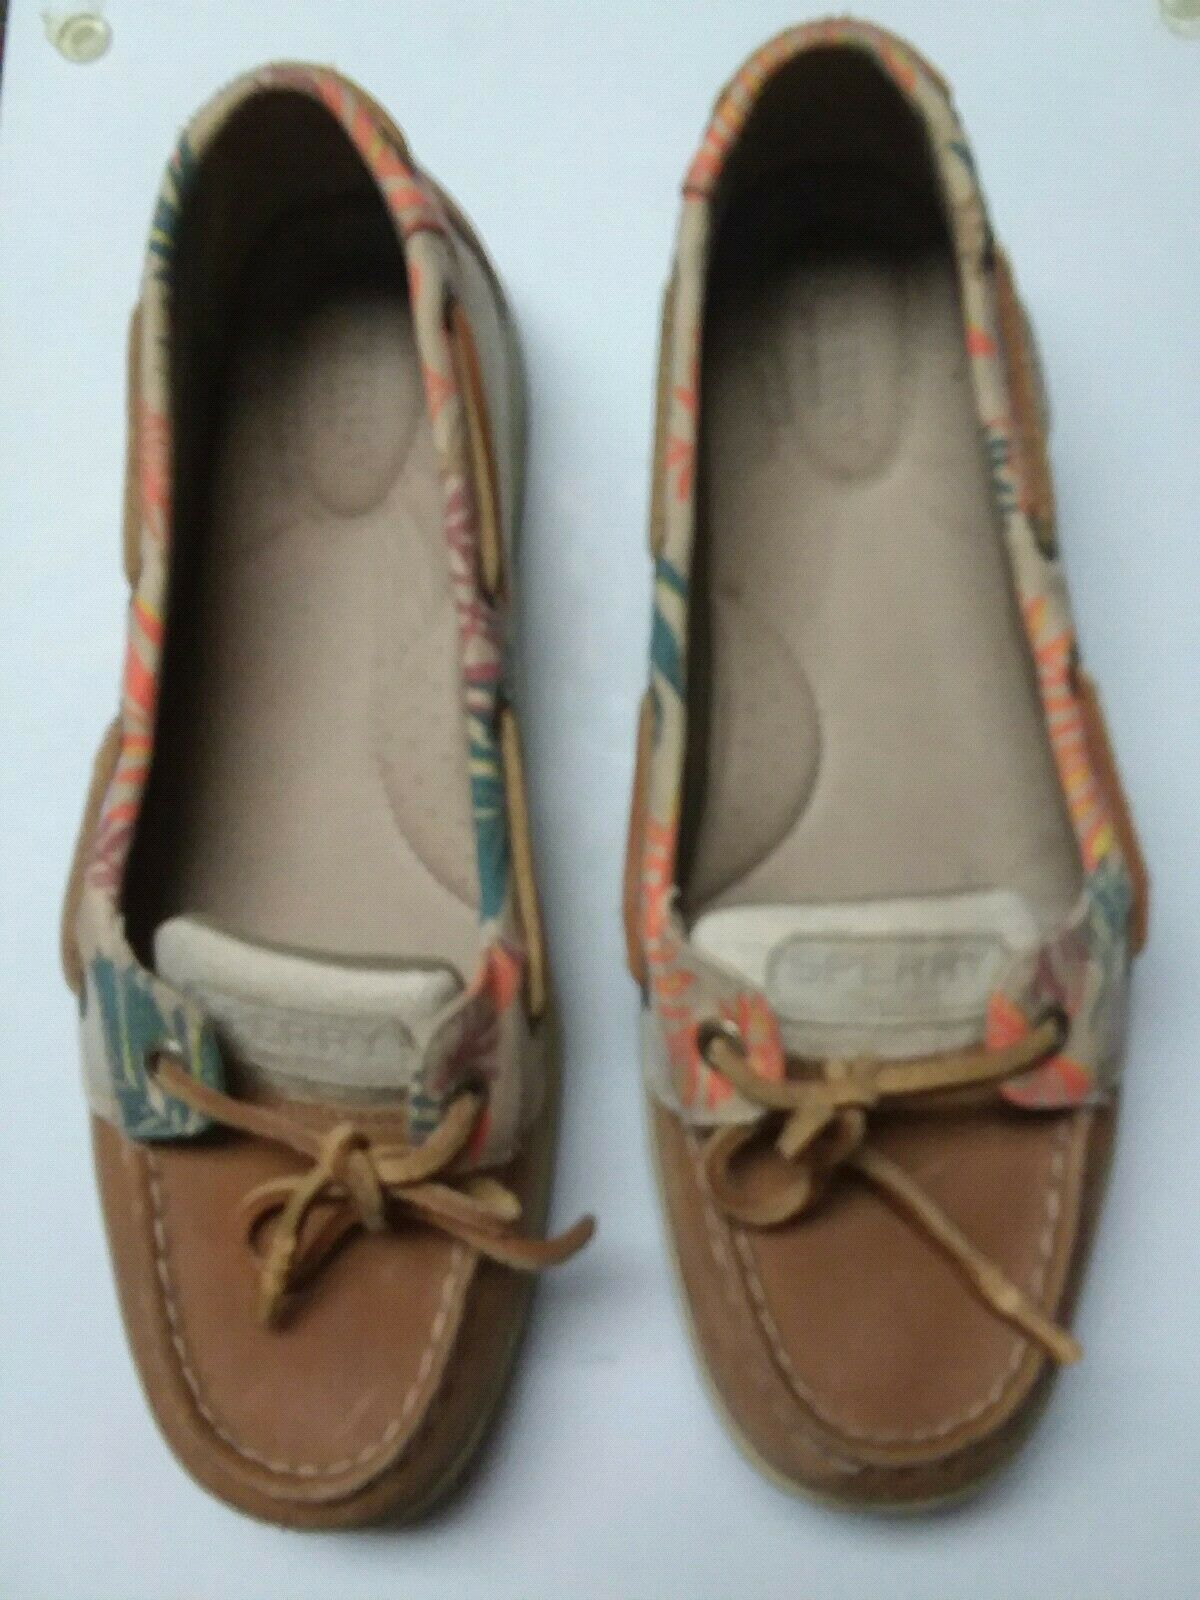 Sperry Womens Beige Floral Print Canvas Boat shoes 9.5M